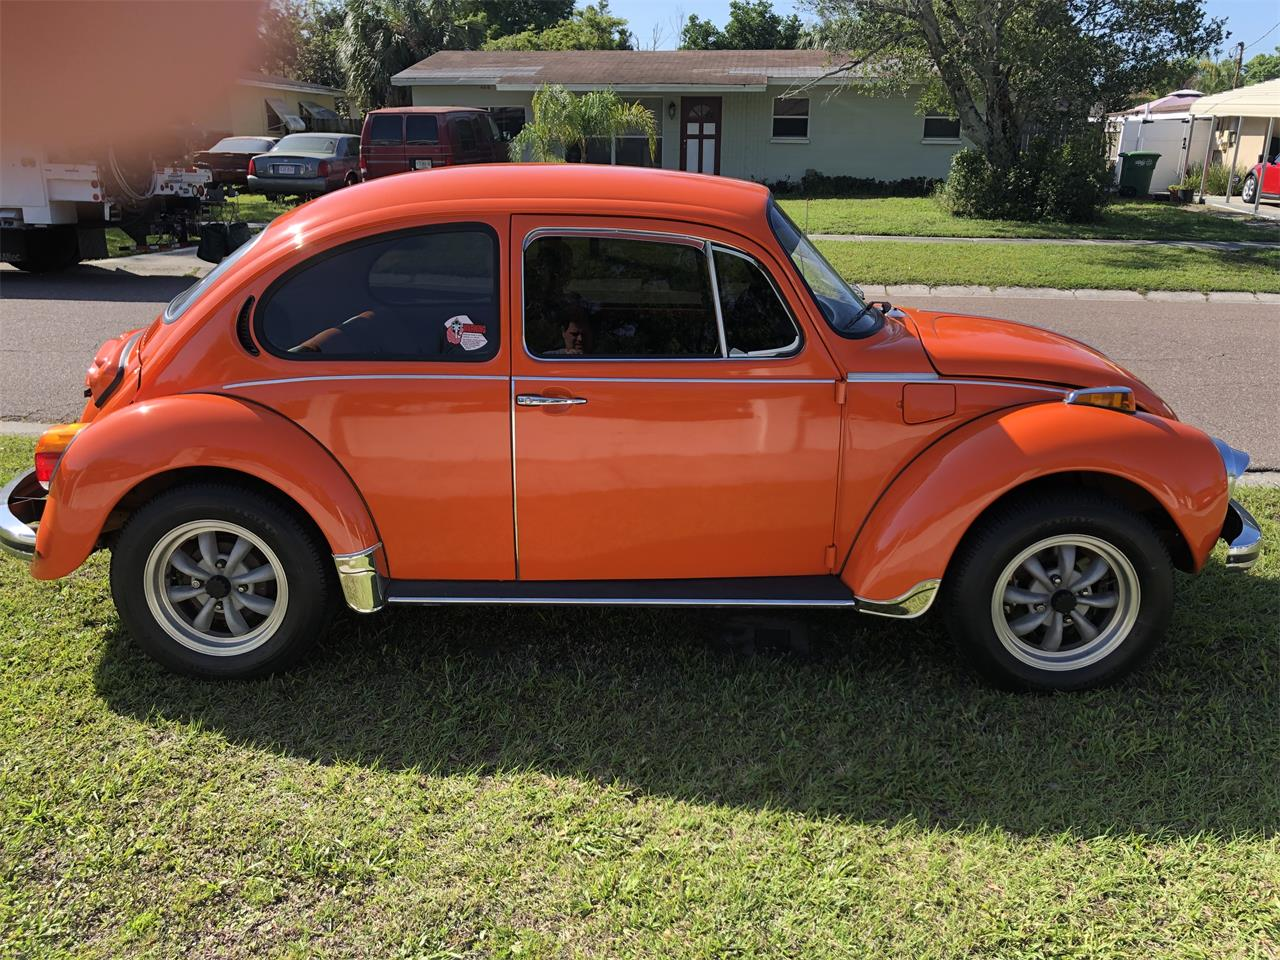 Large Picture of Classic '73 Super Beetle - $10,000.00 Offered by a Private Seller - PMXE